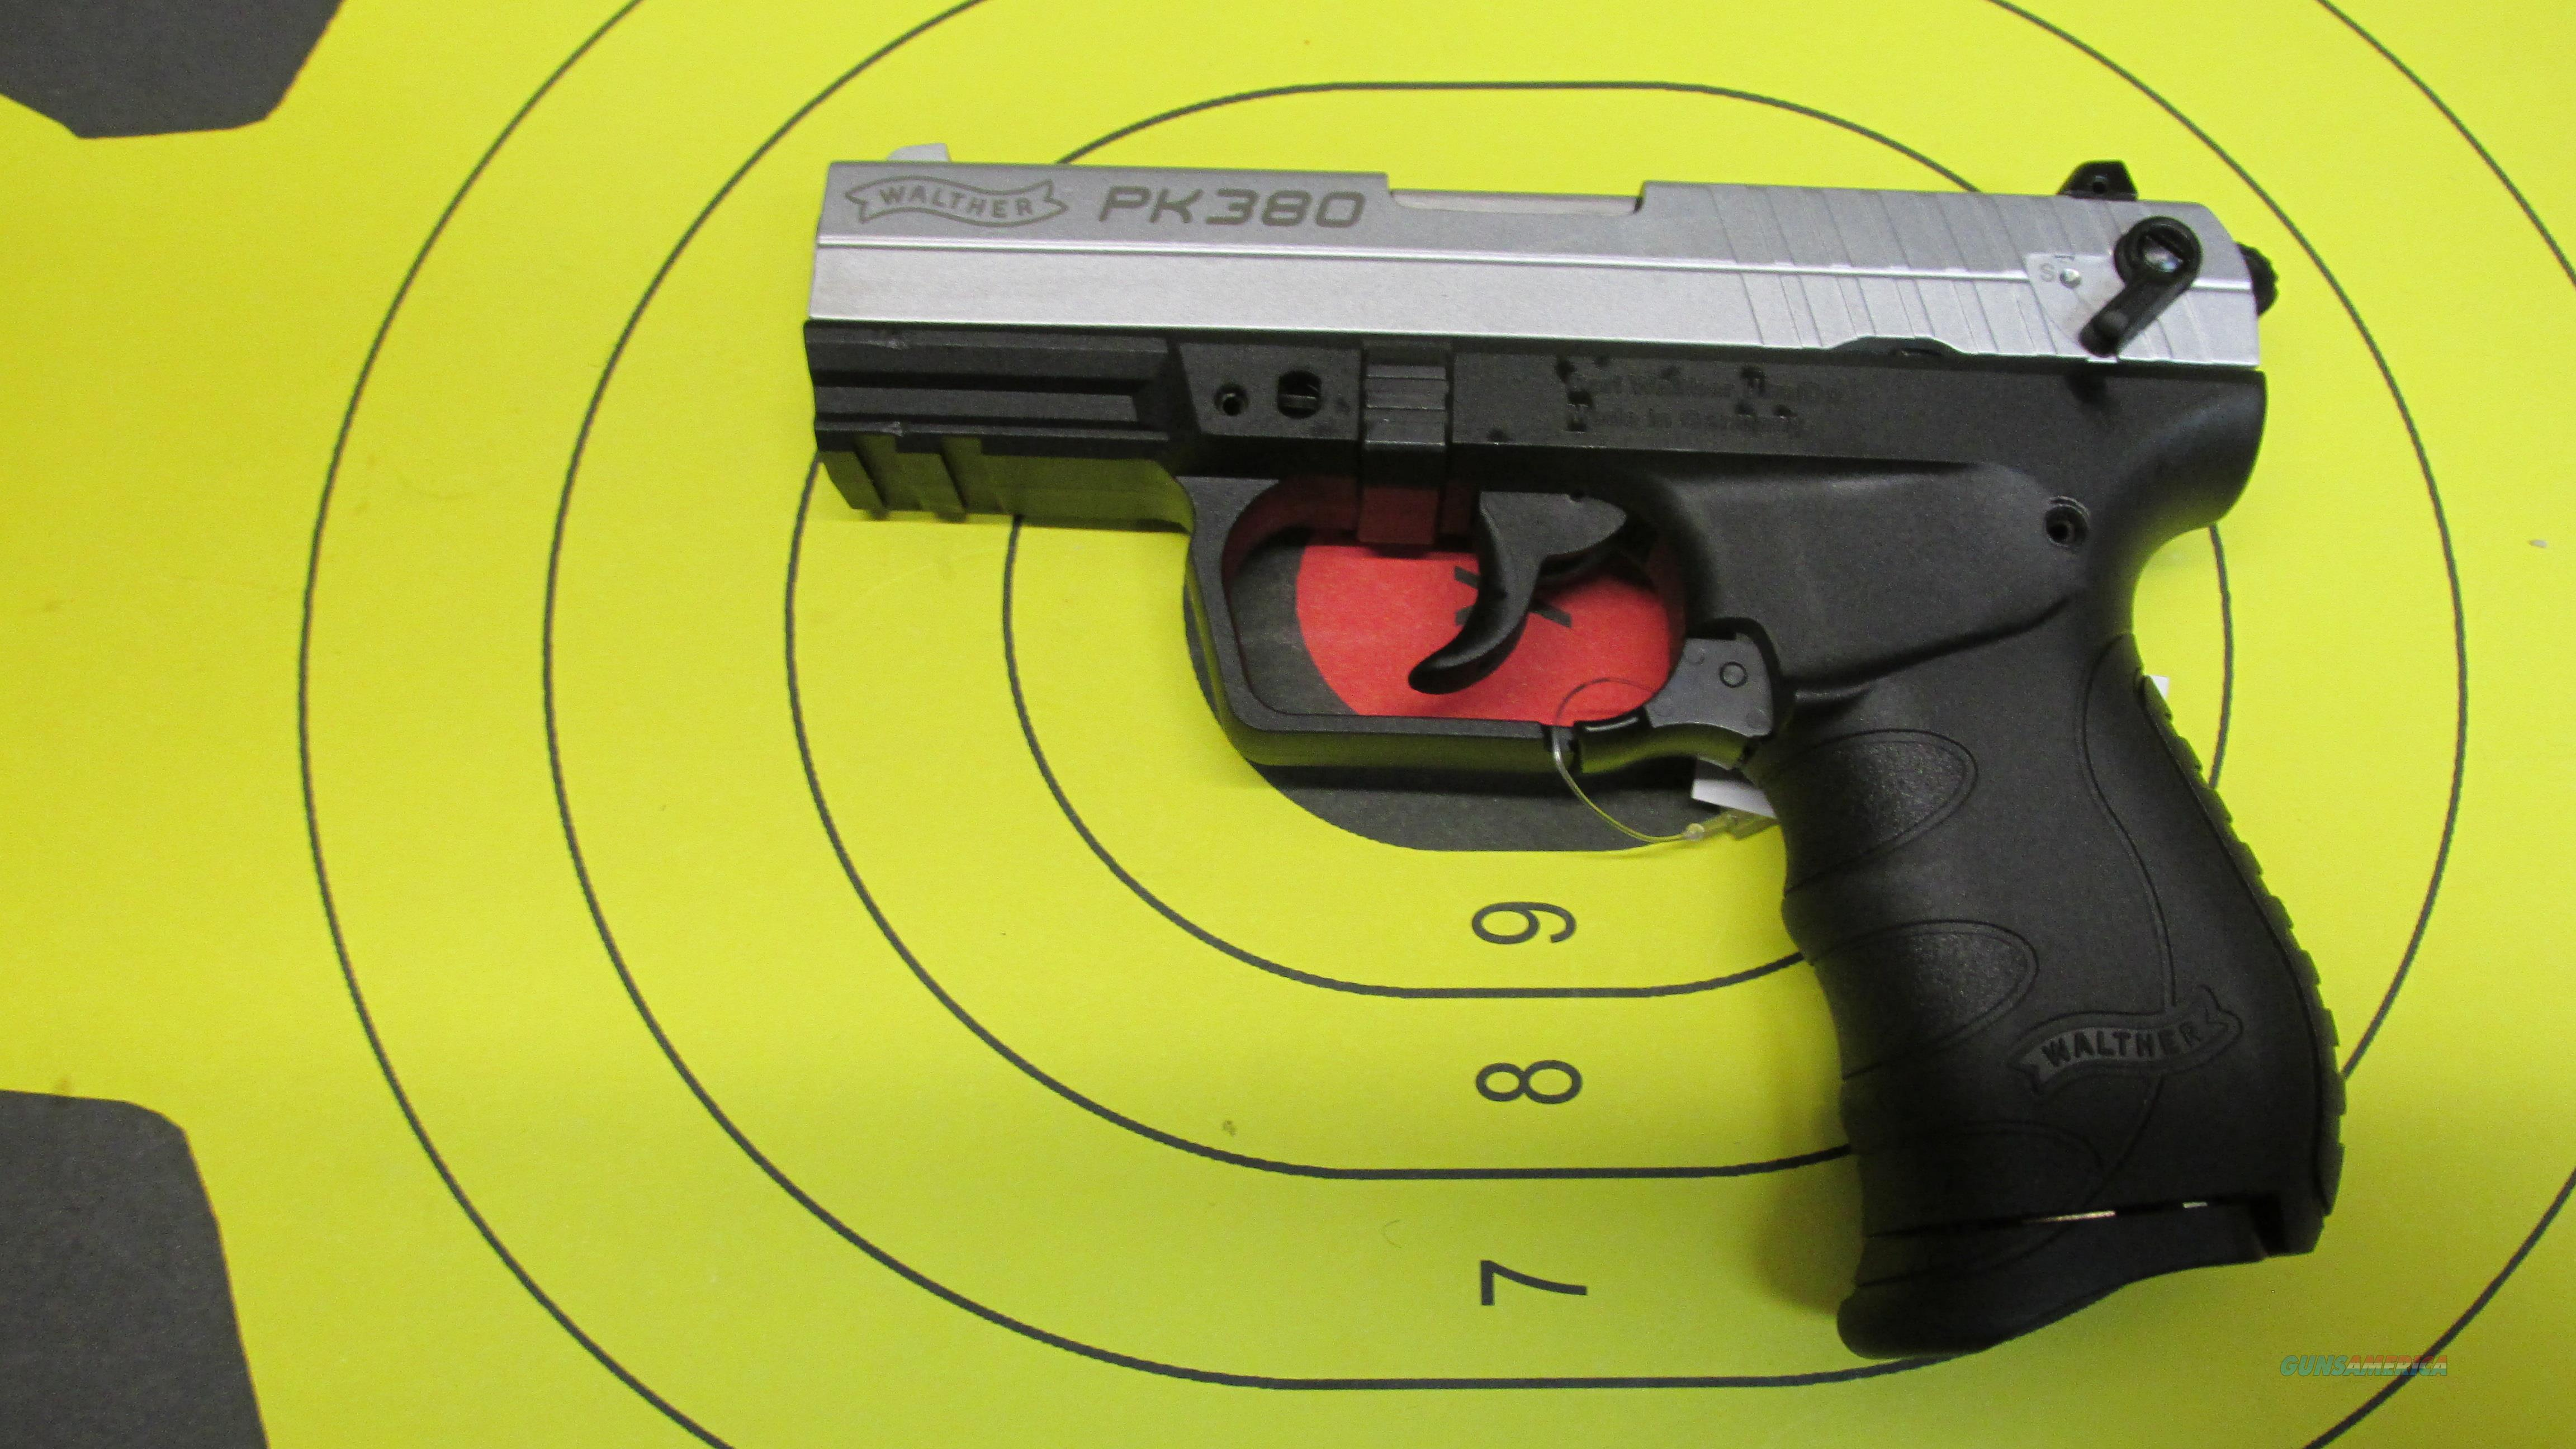 "WALTHER PK380 BI-TONE .380ACP PISTOL 7 ROUND MAGAZINE WITH A 3.66"" BARREL  Guns > Pistols > Walther Pistols > Post WWII > PK380"